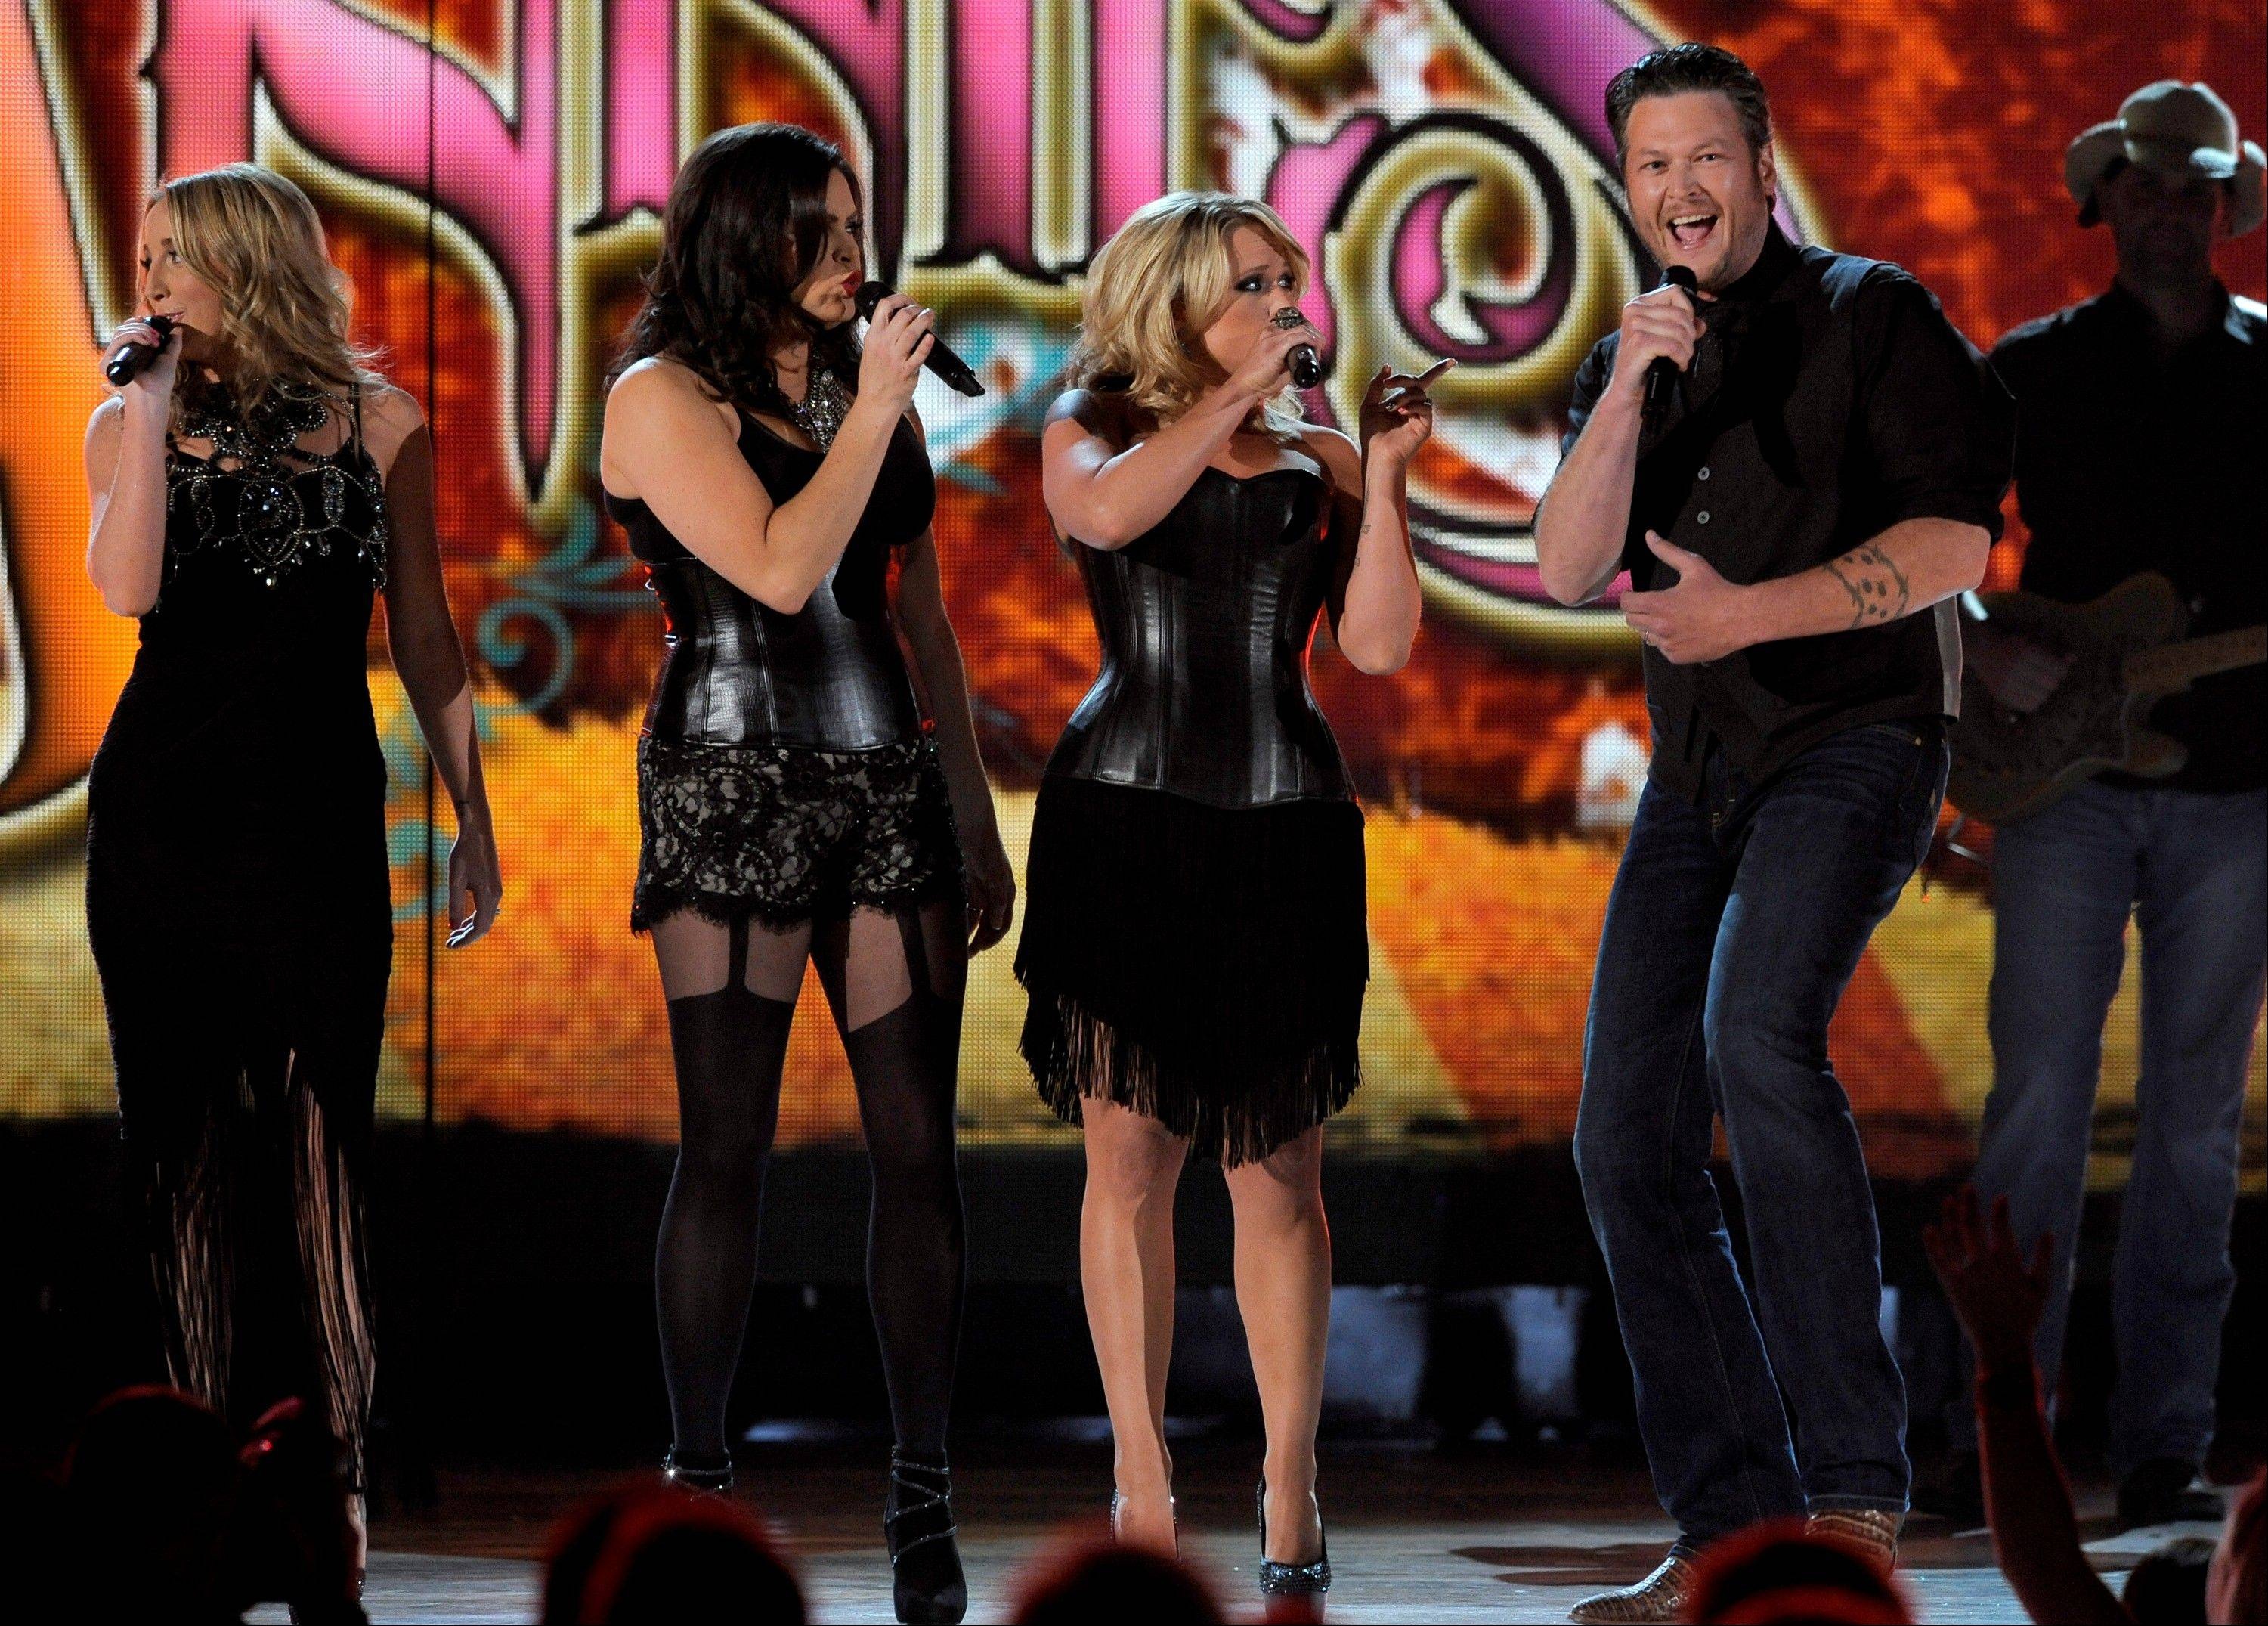 From left, Ashley Monroe, Angaleena Presley and Miranda Lambert of musical group Pistol Annies, and singer Blake Shelton perform at the 48th Annual Academy of Country Music Awards at the MGM Grand Garden Arena in Las Vegas on Sunday, April 7, 2013.